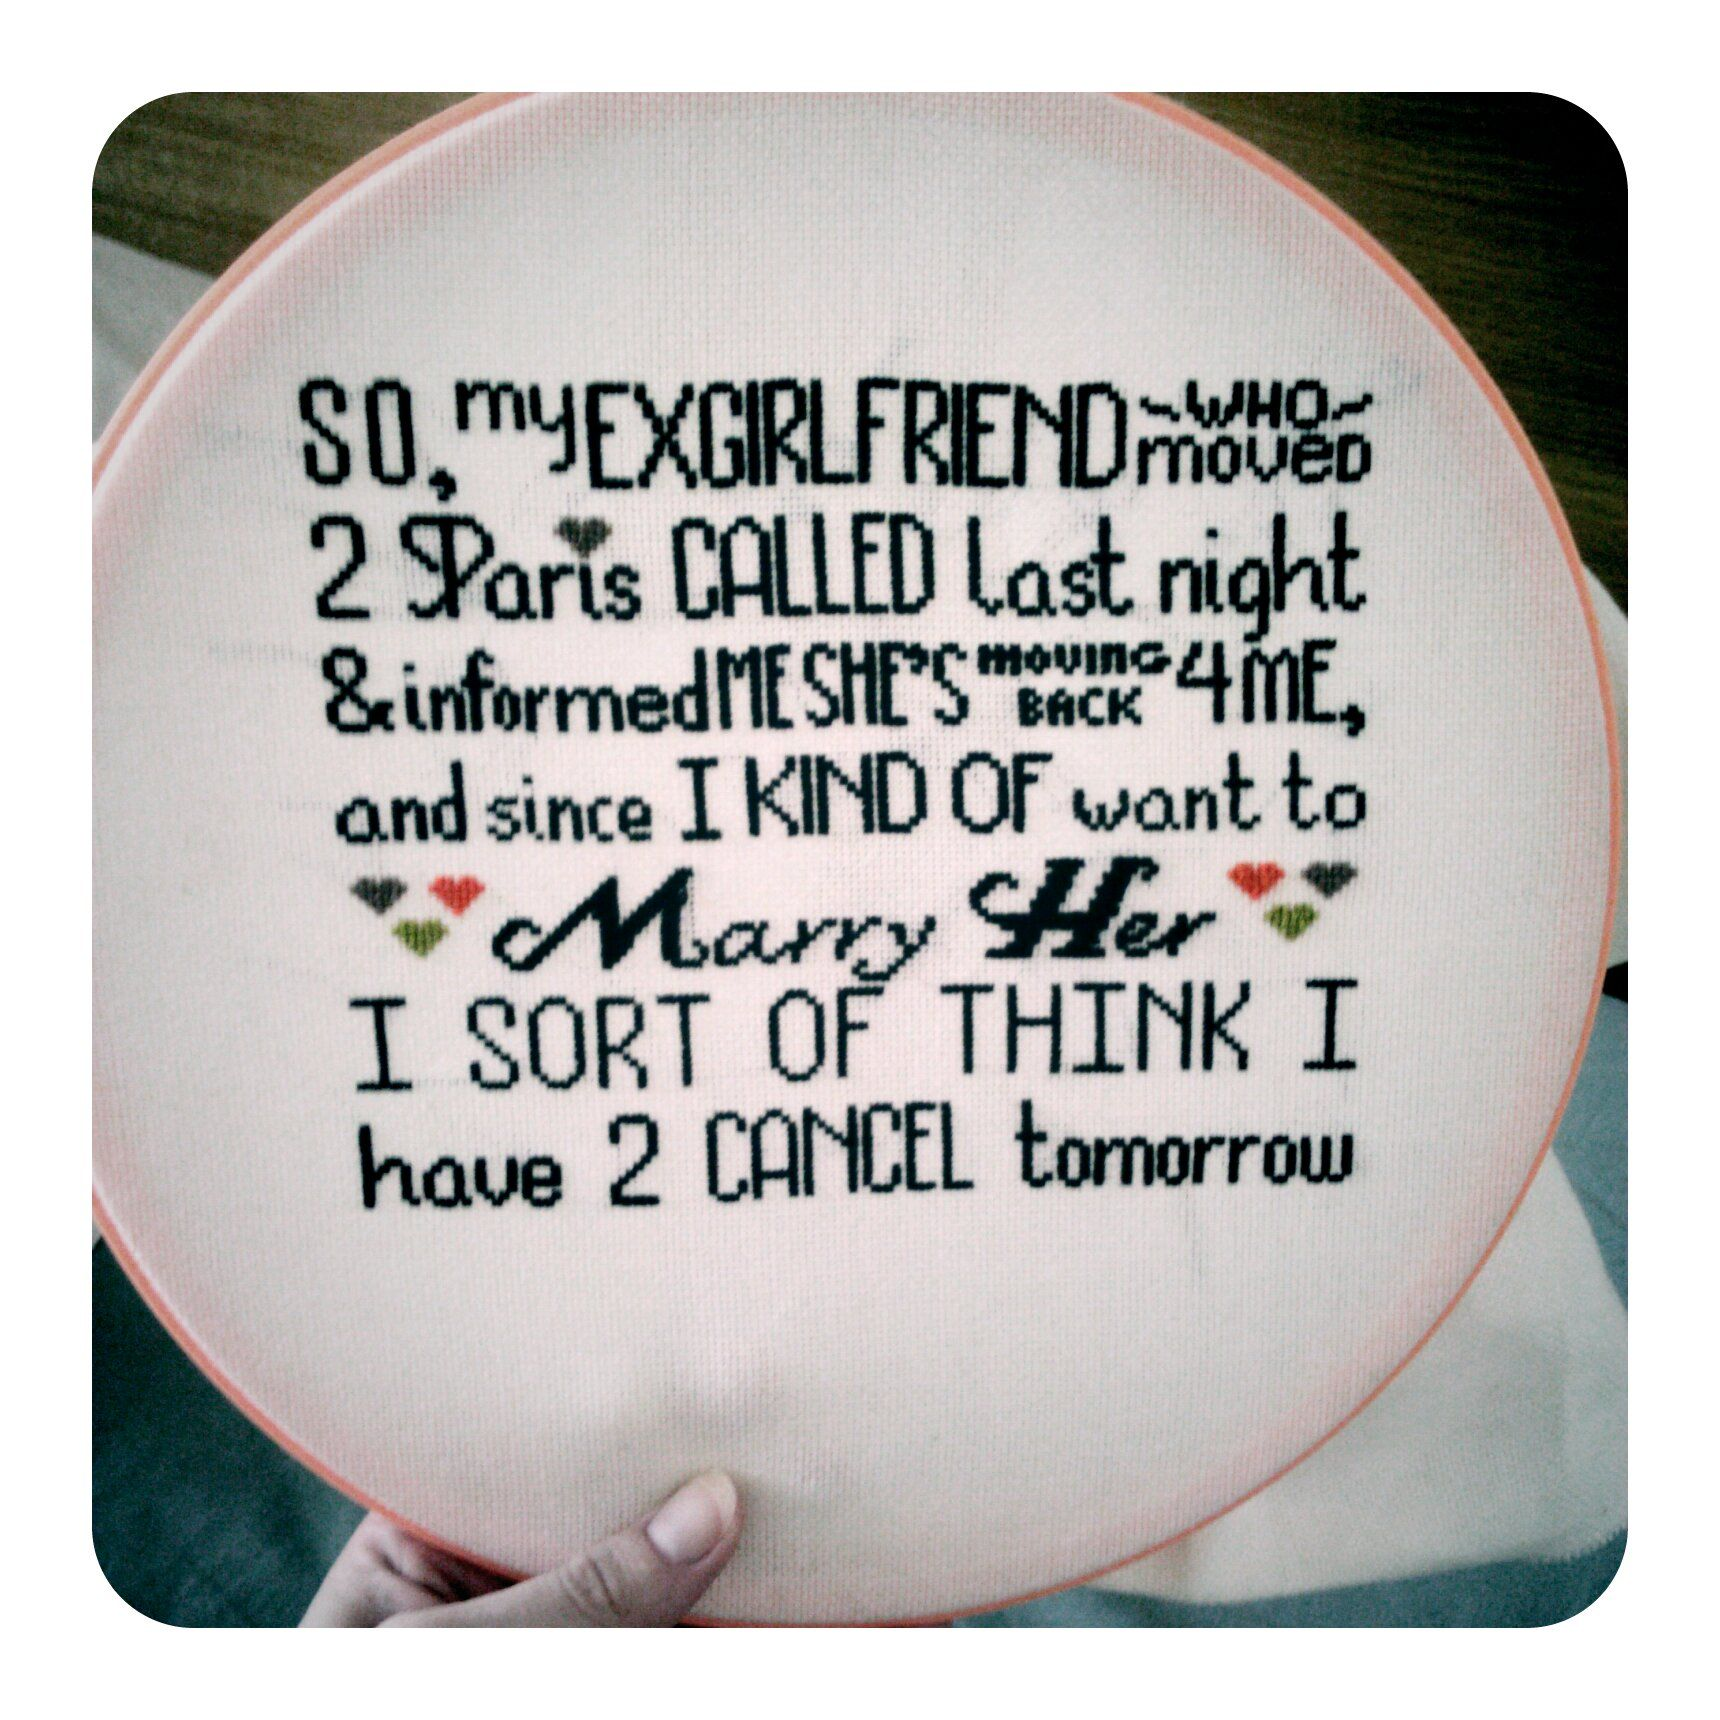 cross stitched rejection